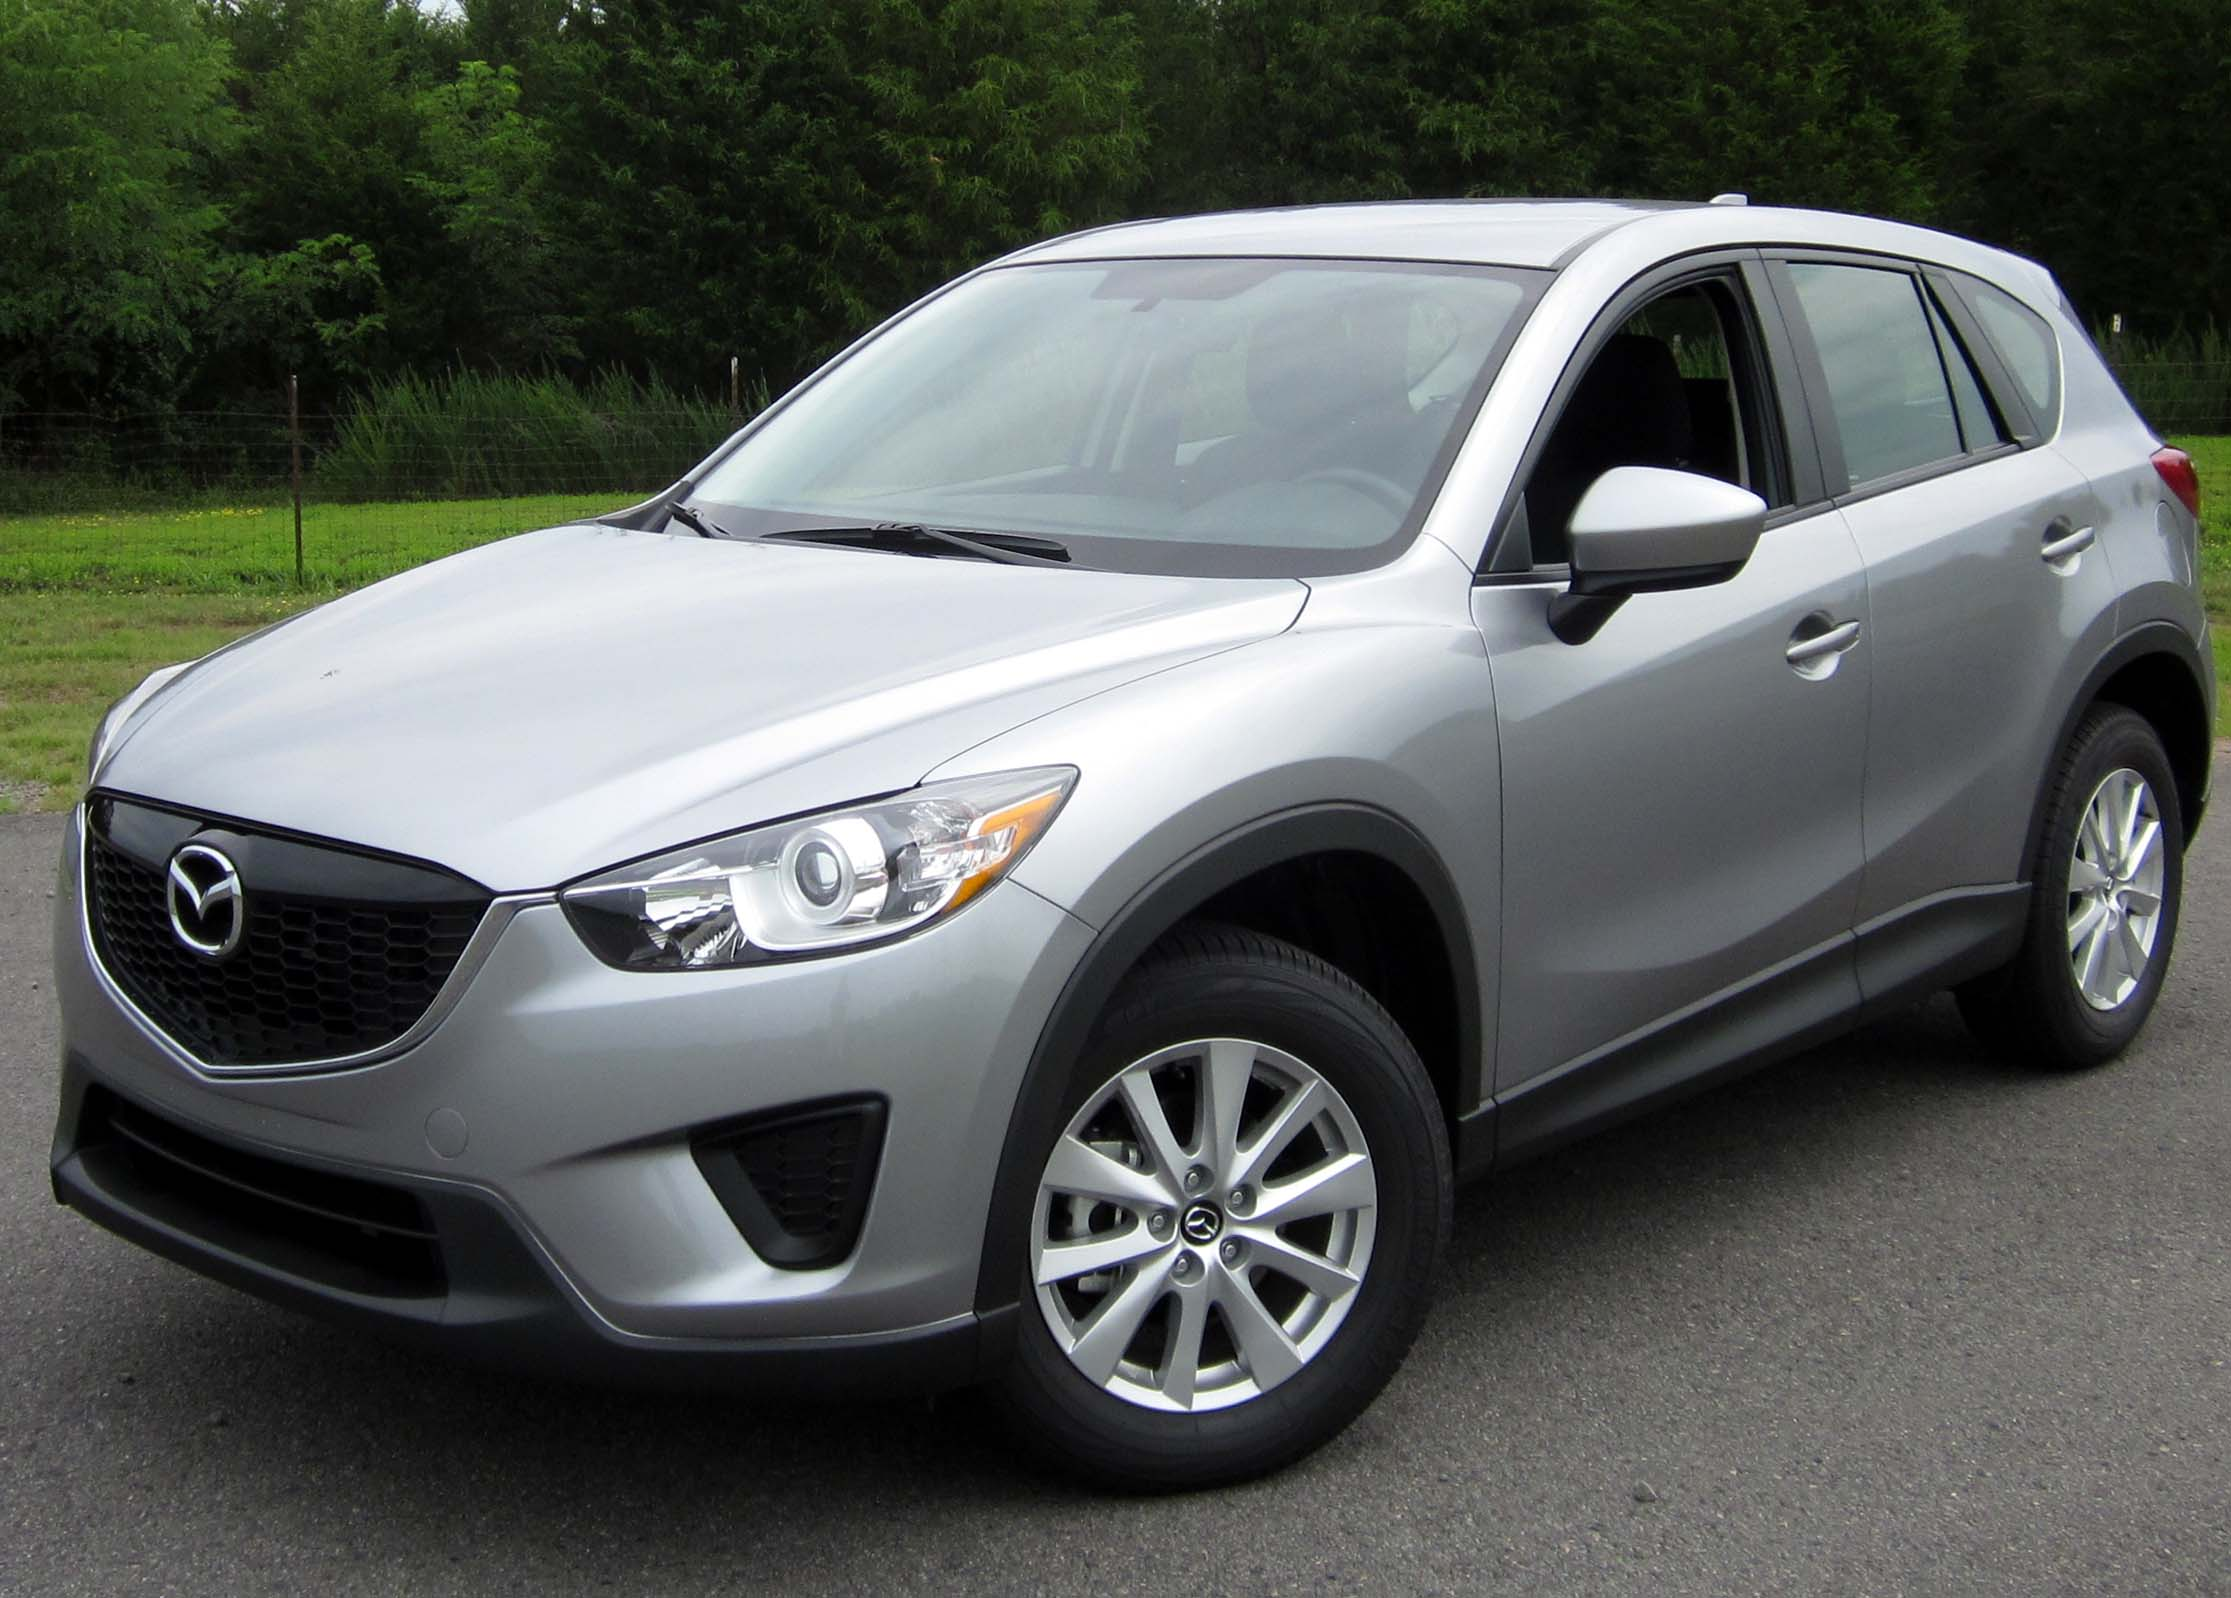 file:2013 mazda cx-5 sport -- 07-13-2012 - wikimedia commons